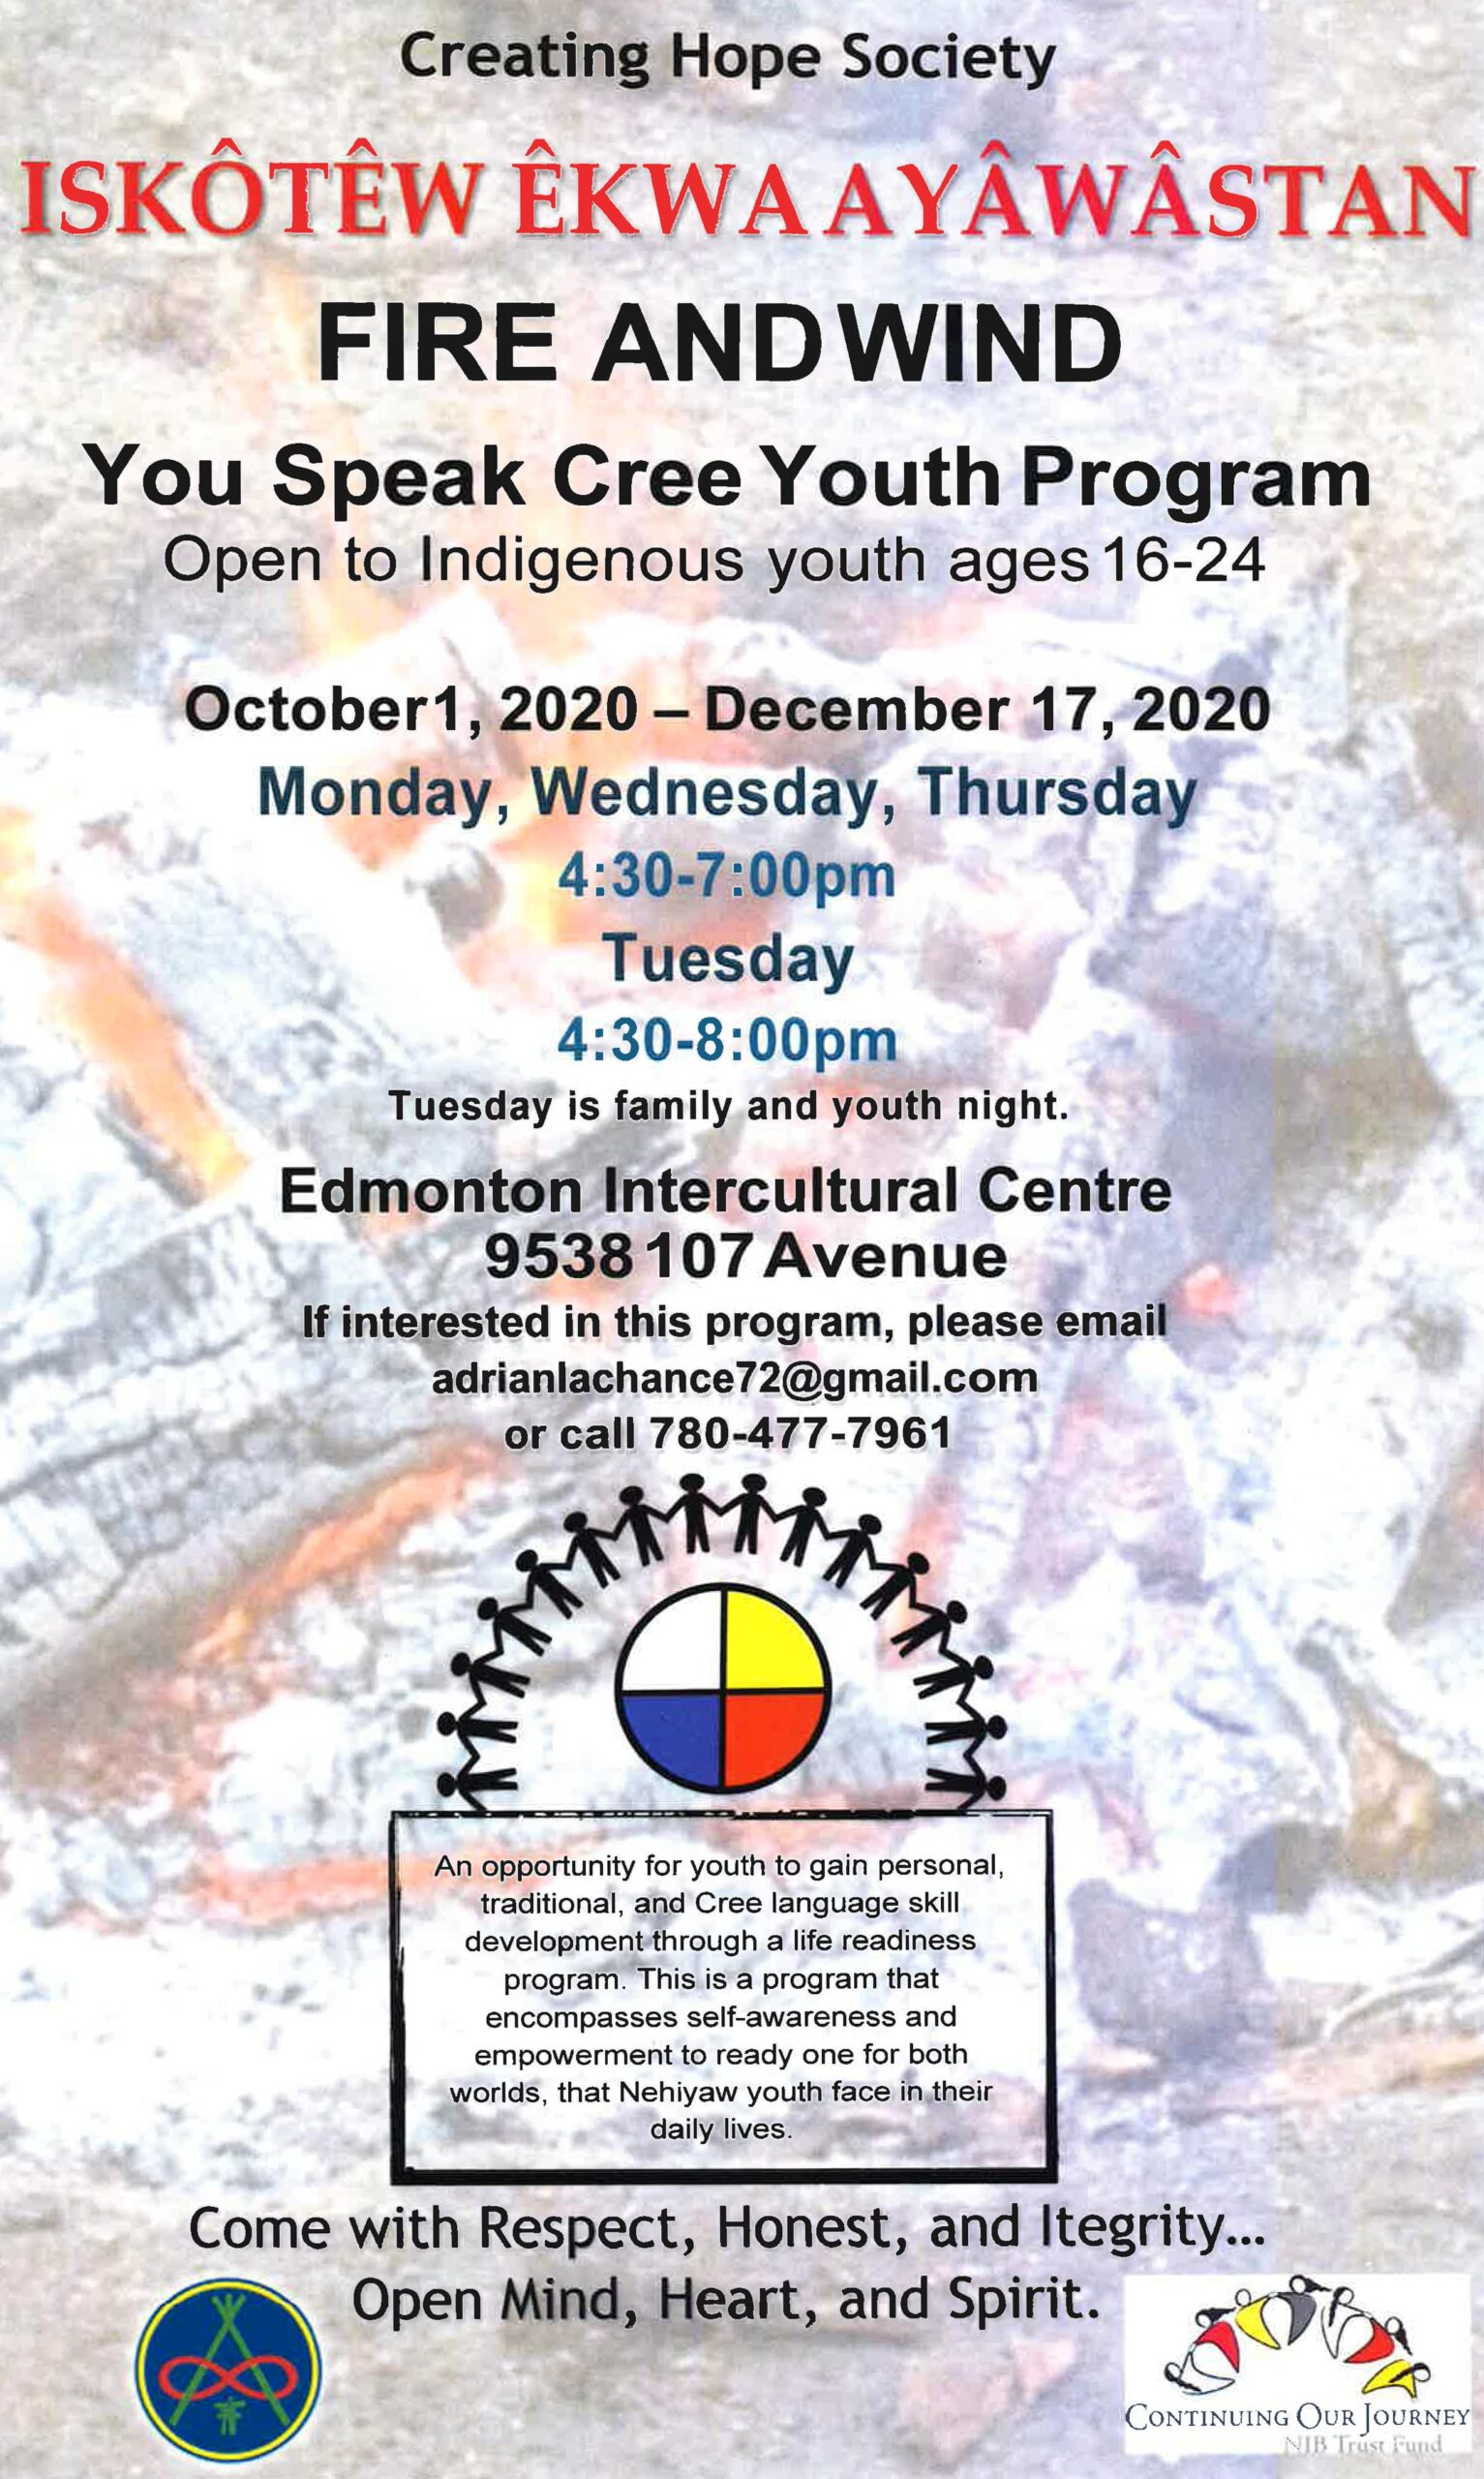 You Speak Cree Youth Mentorship Program Fire and Wind Poster 1 min scaled